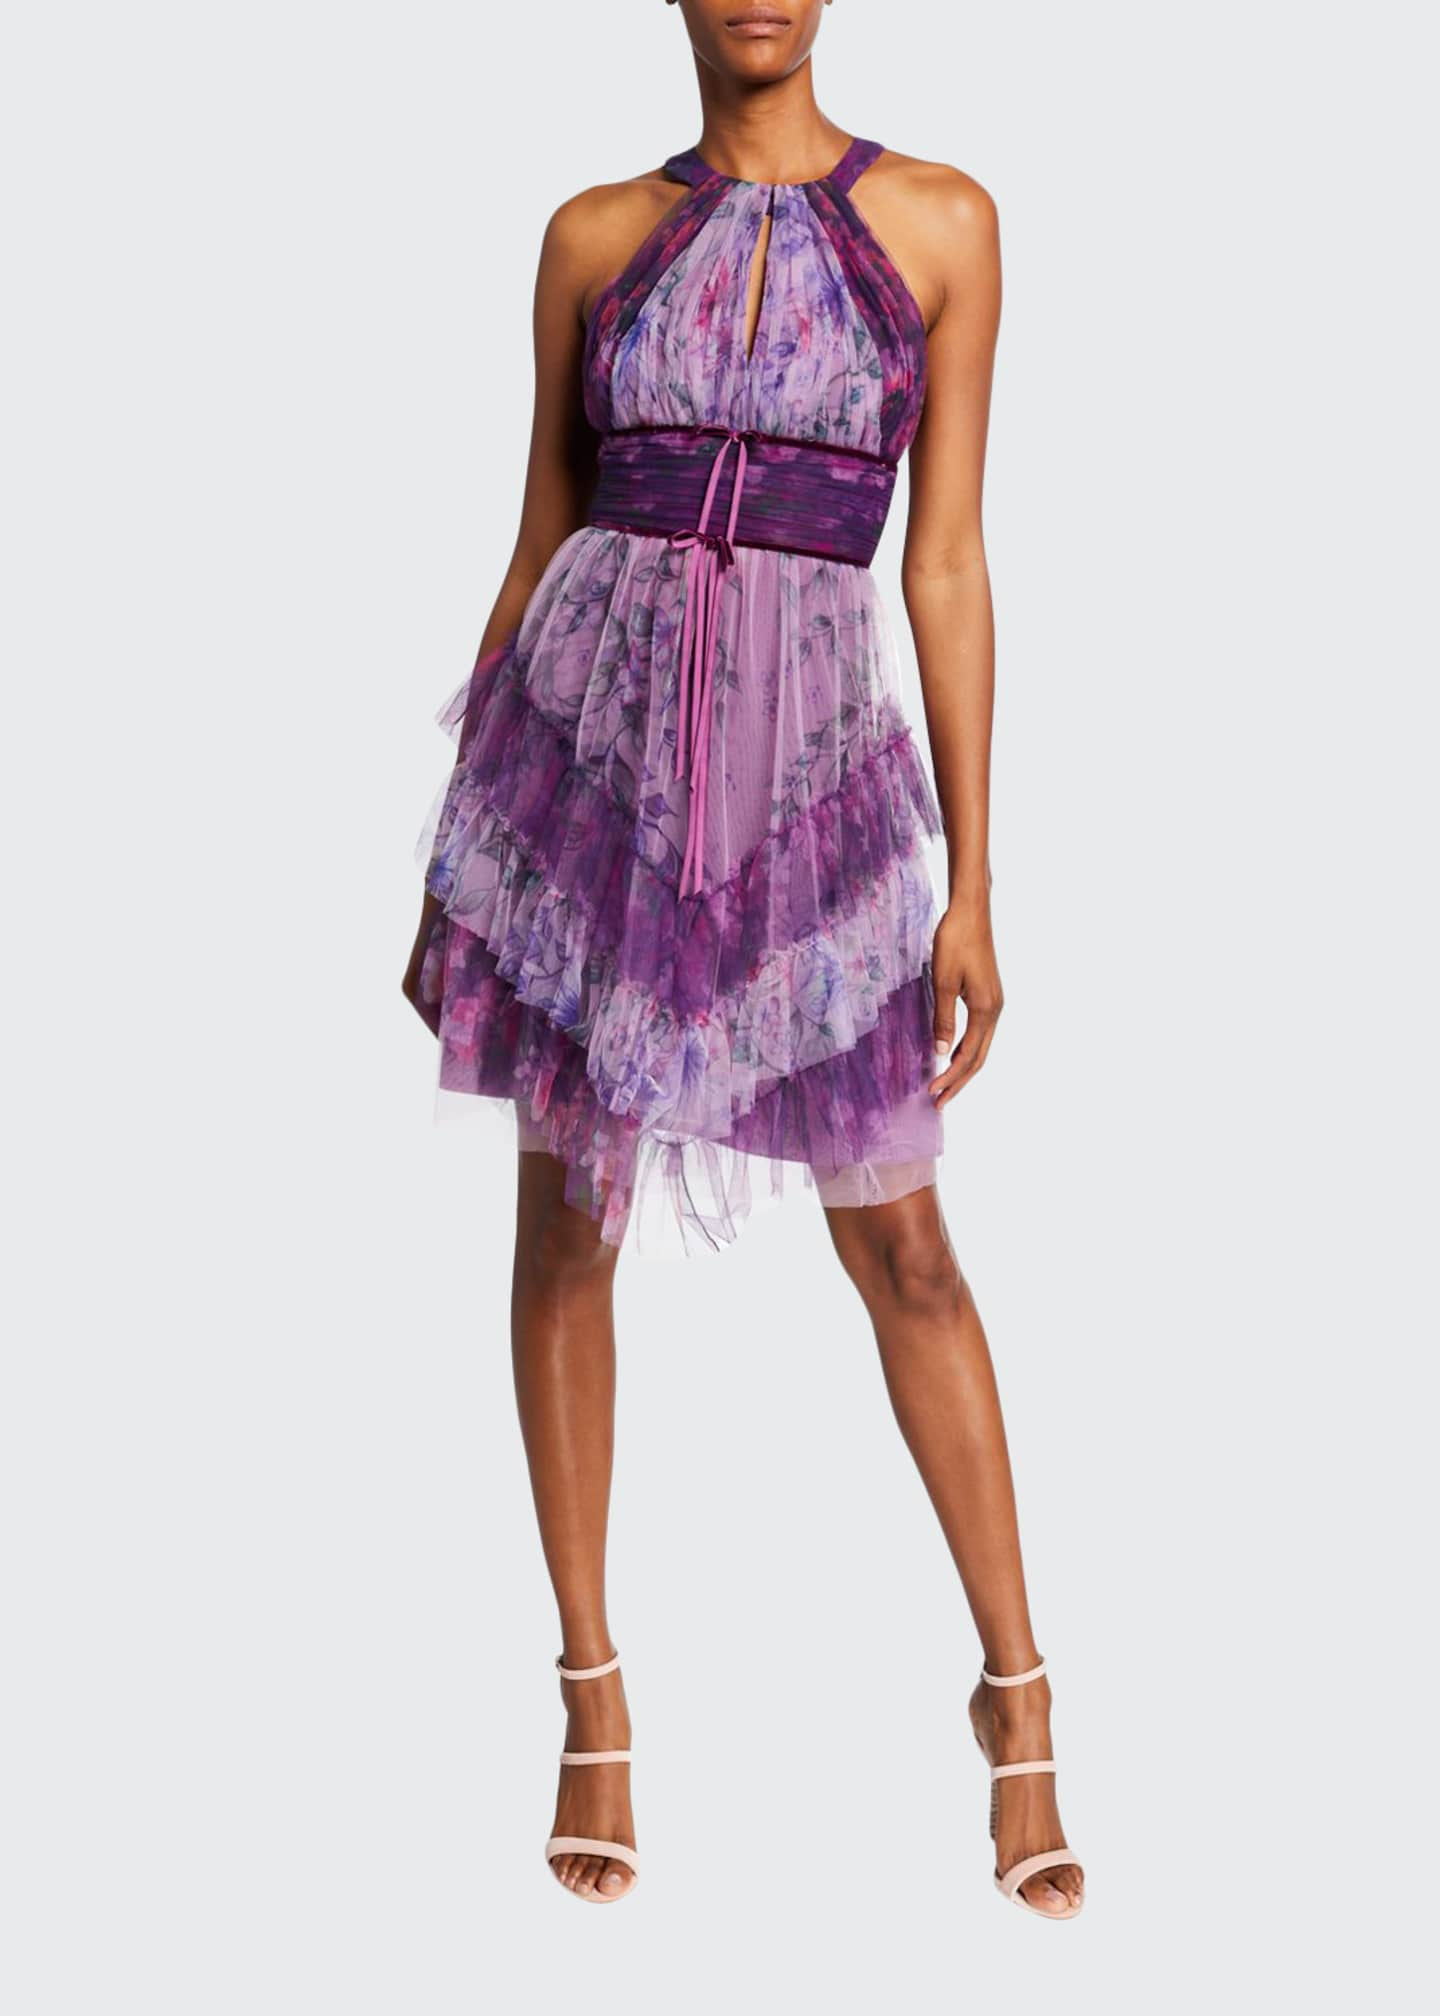 Image 1 of 2: Colorblocked Floral-Printed Tulle Dress with Ruffle Skirt Detailing